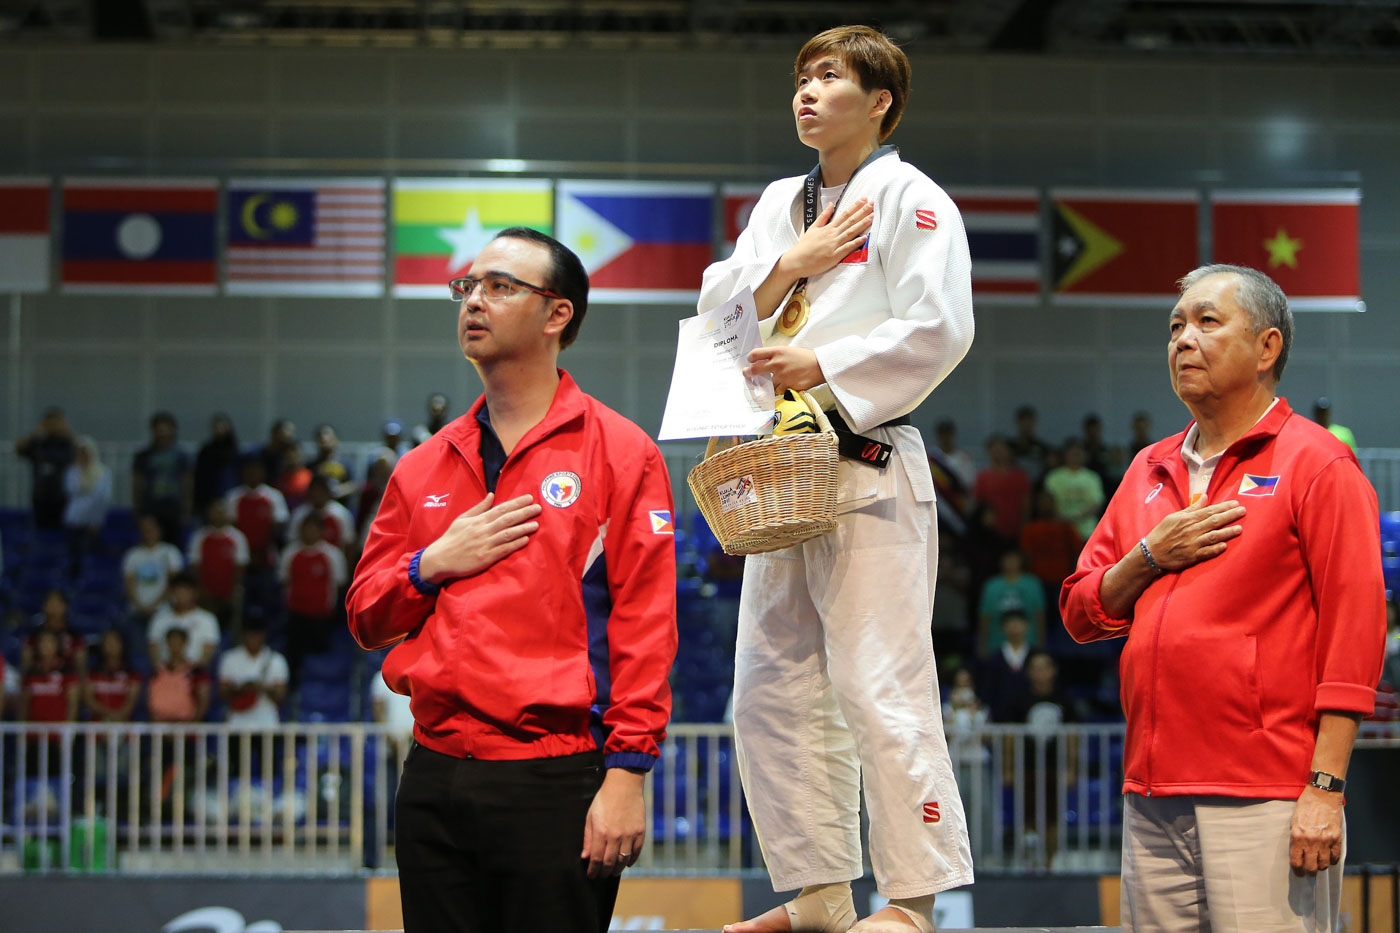 NATIONAL ANTHEM. Kiyomi Watanabe of the Philippines clinches the gold medal in the women's -63kg judo event. She is seen here during the Philippine national anthem with Philippine officials. Photo by PSC-POC Media Group